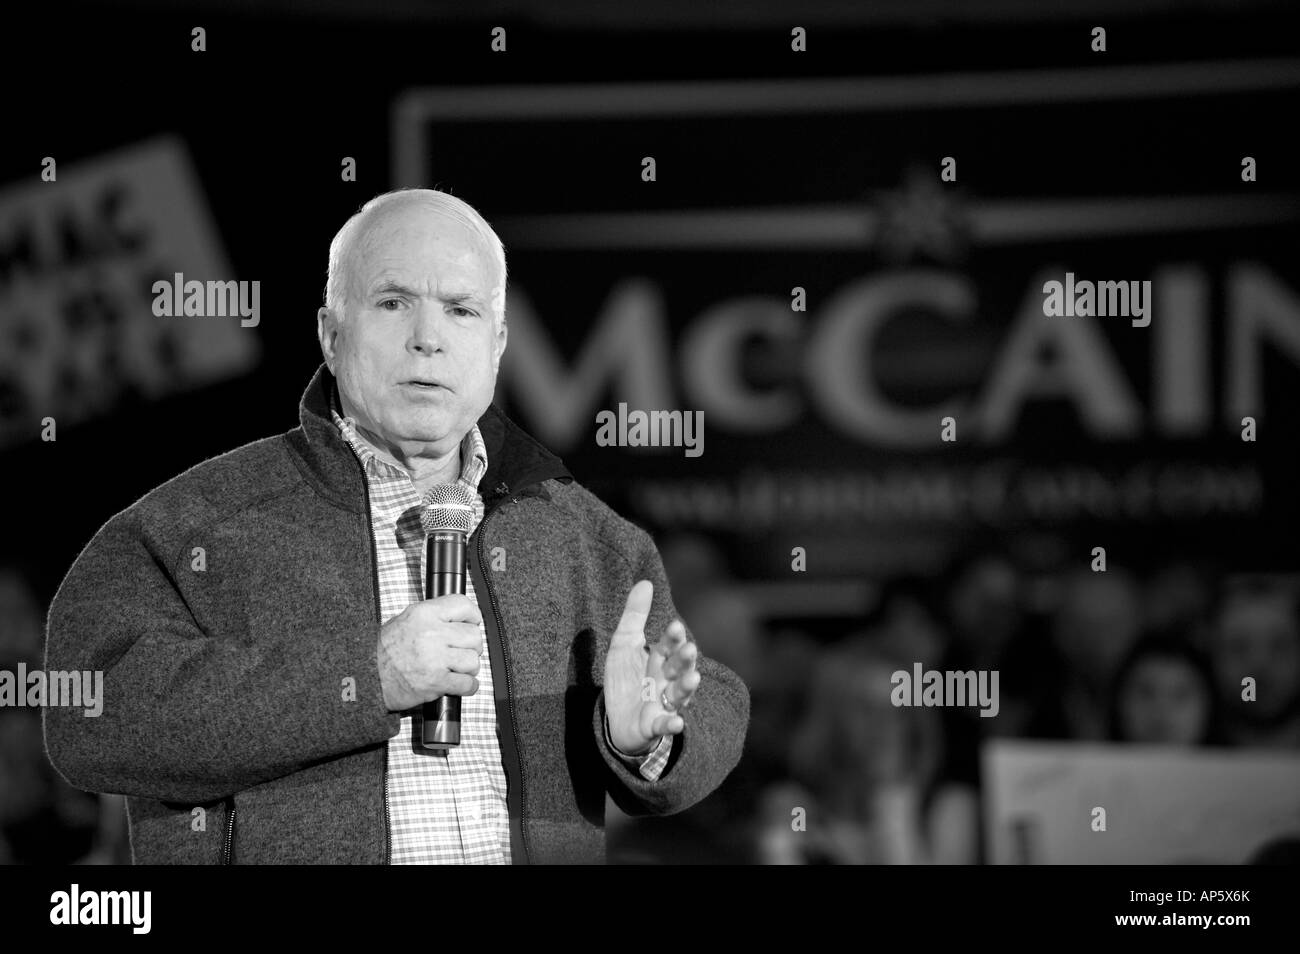 Candidate Black And White Stock Photos Images Alamy